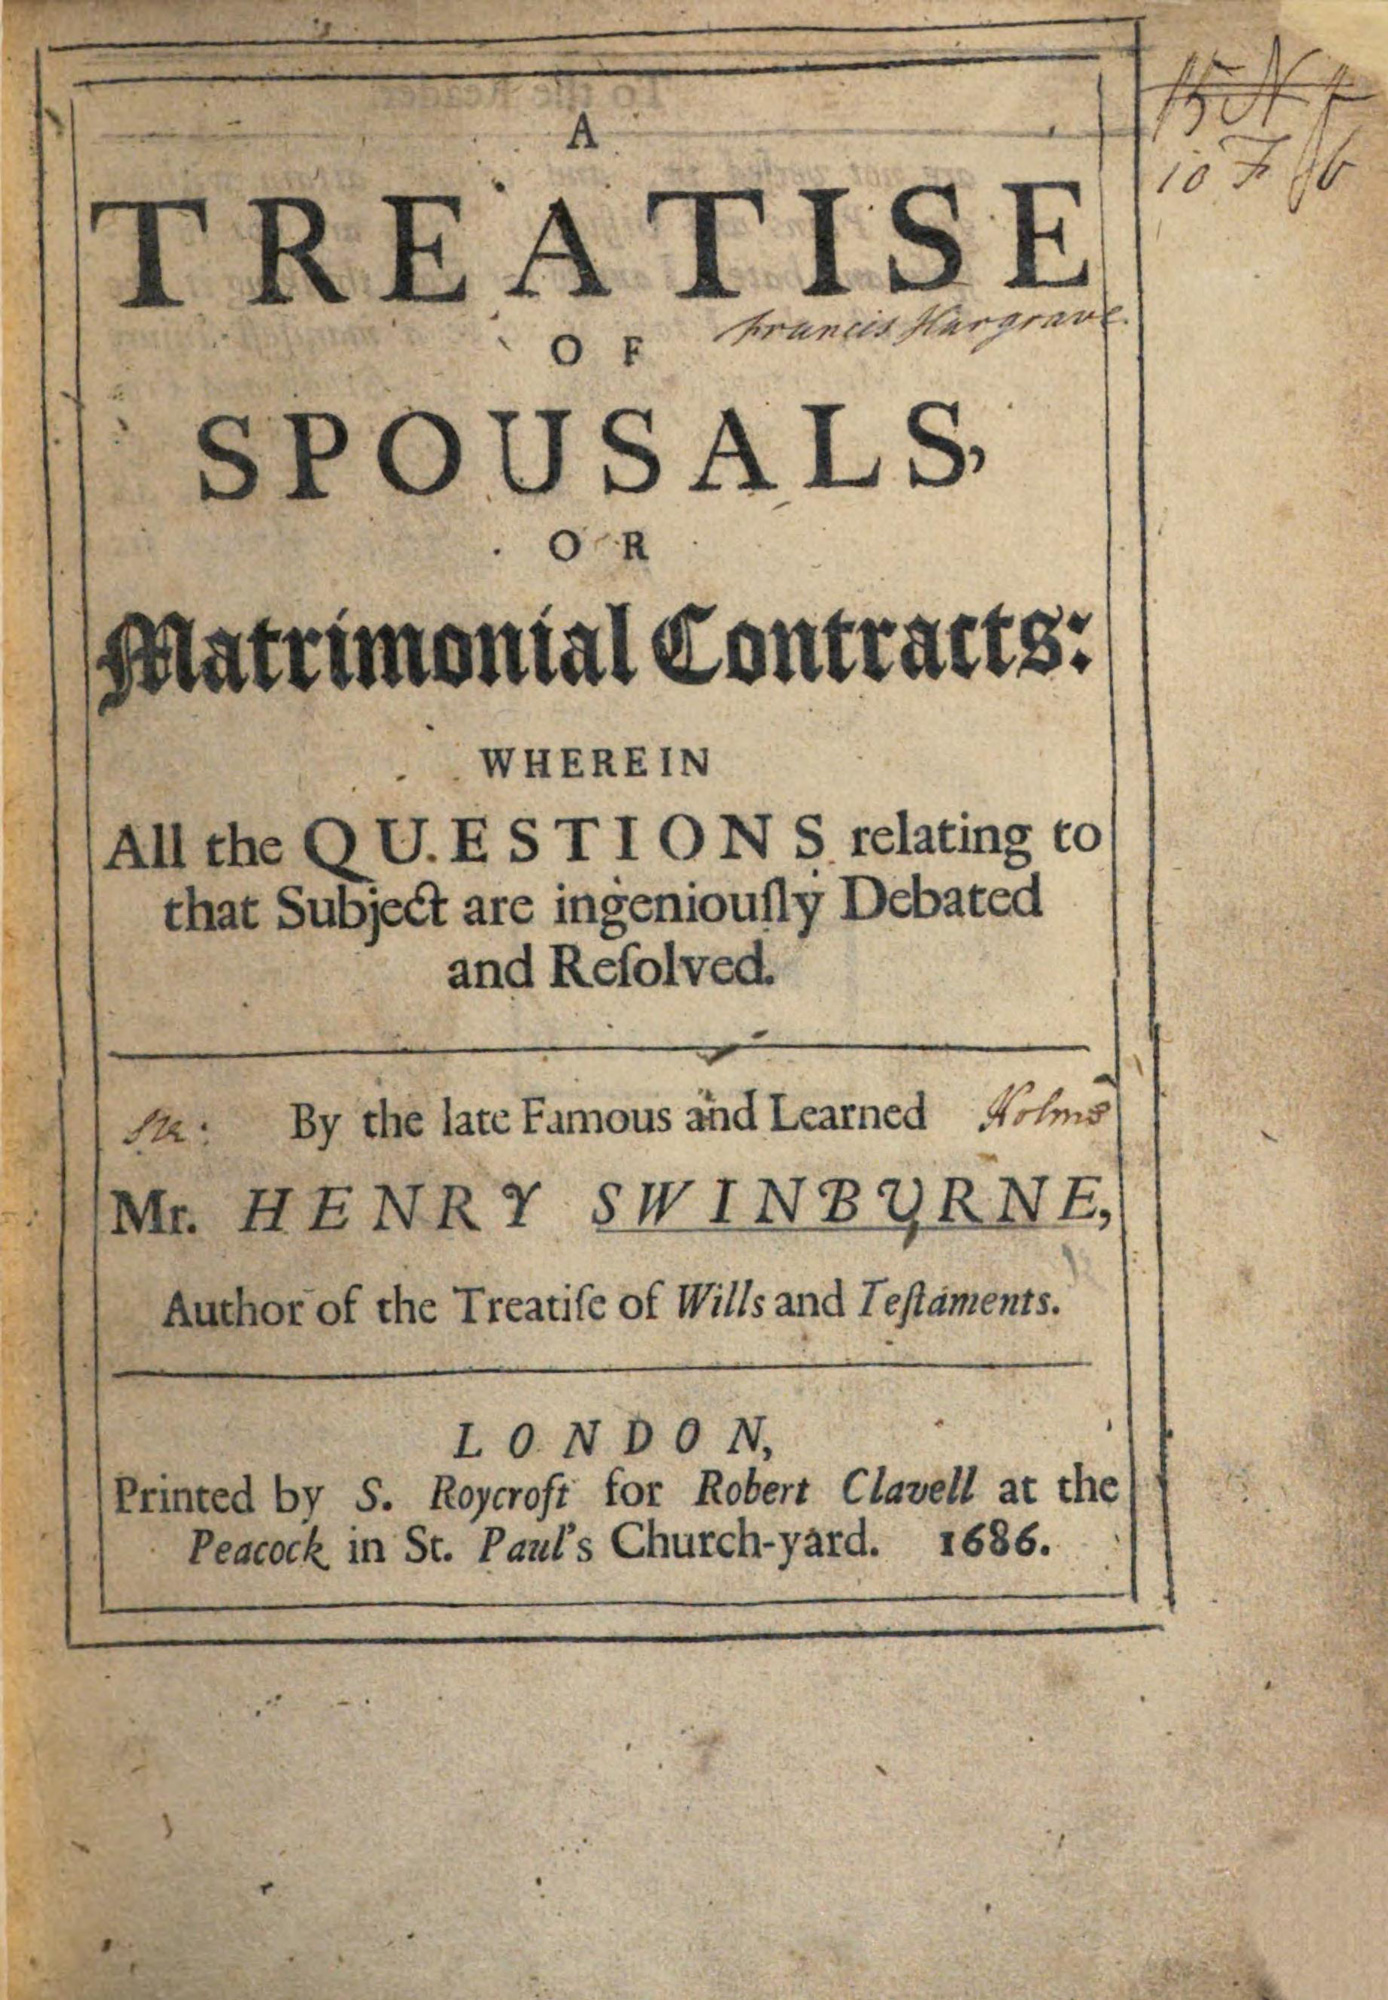 A Treatise of Spousals by Henry Swinburne, 1686